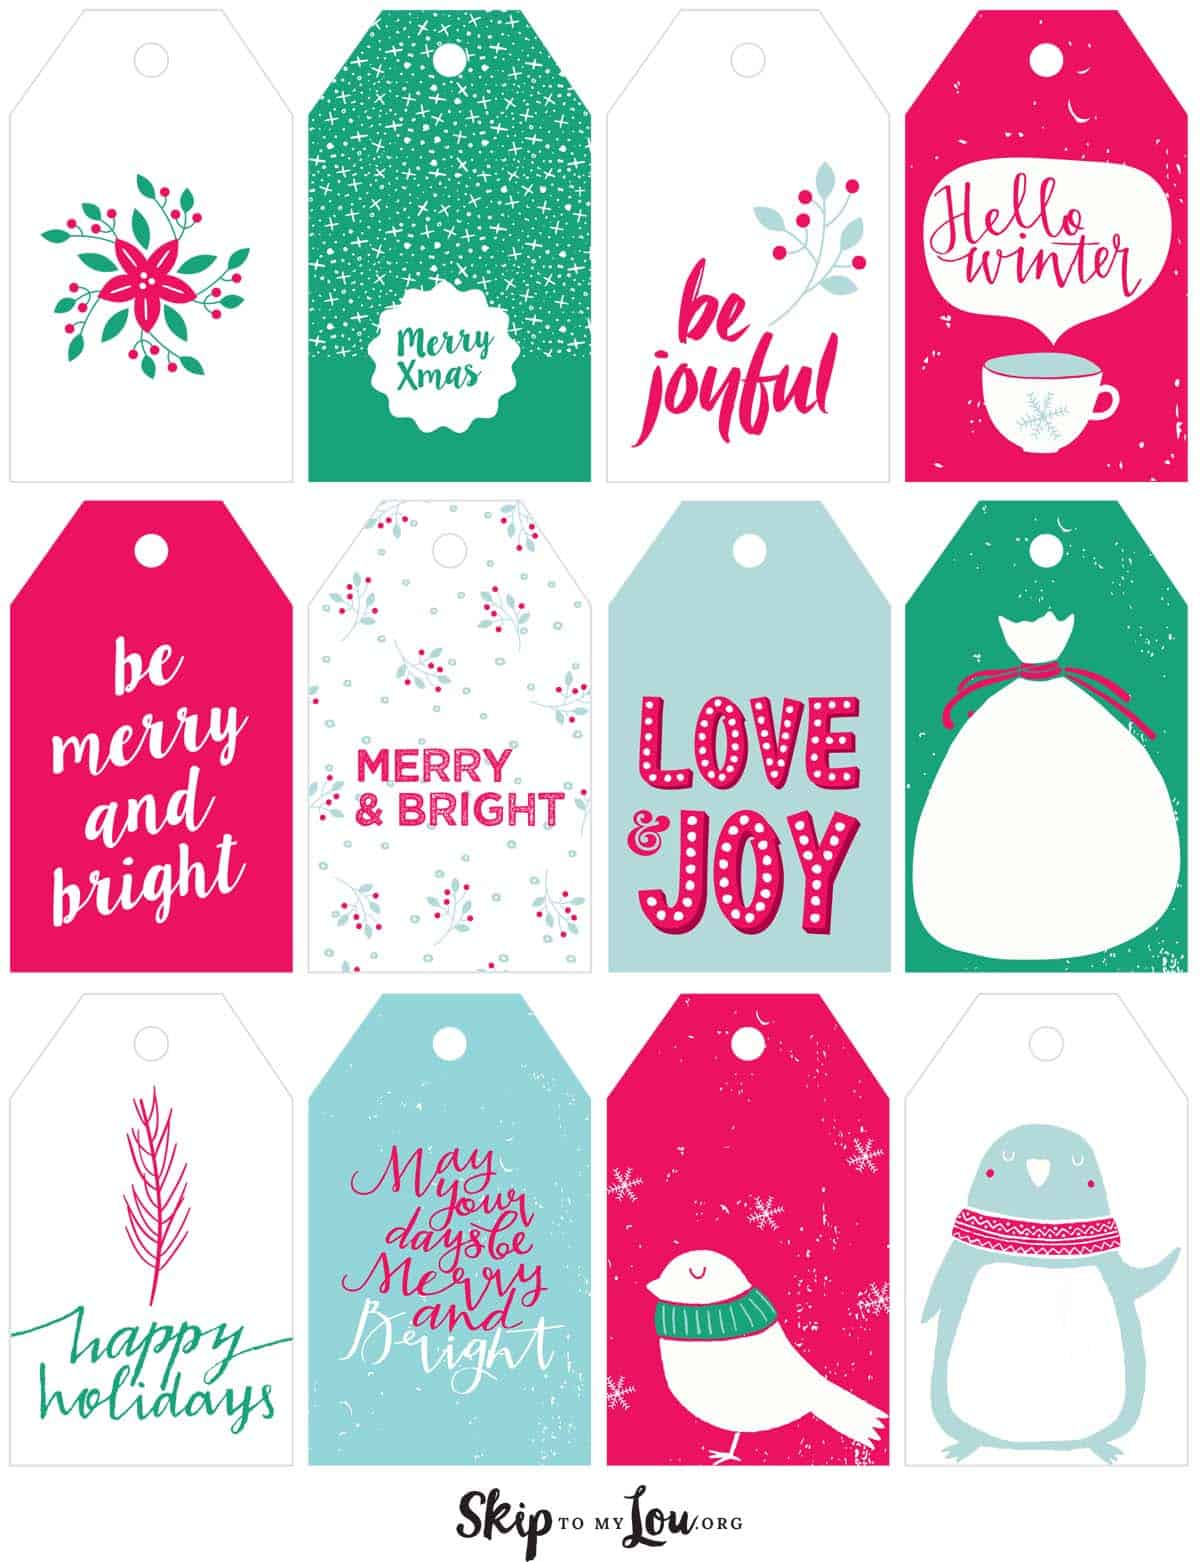 photo relating to Printable Christmas Gift Tag named Printable Xmas Present Tags Miss In direction of My Lou